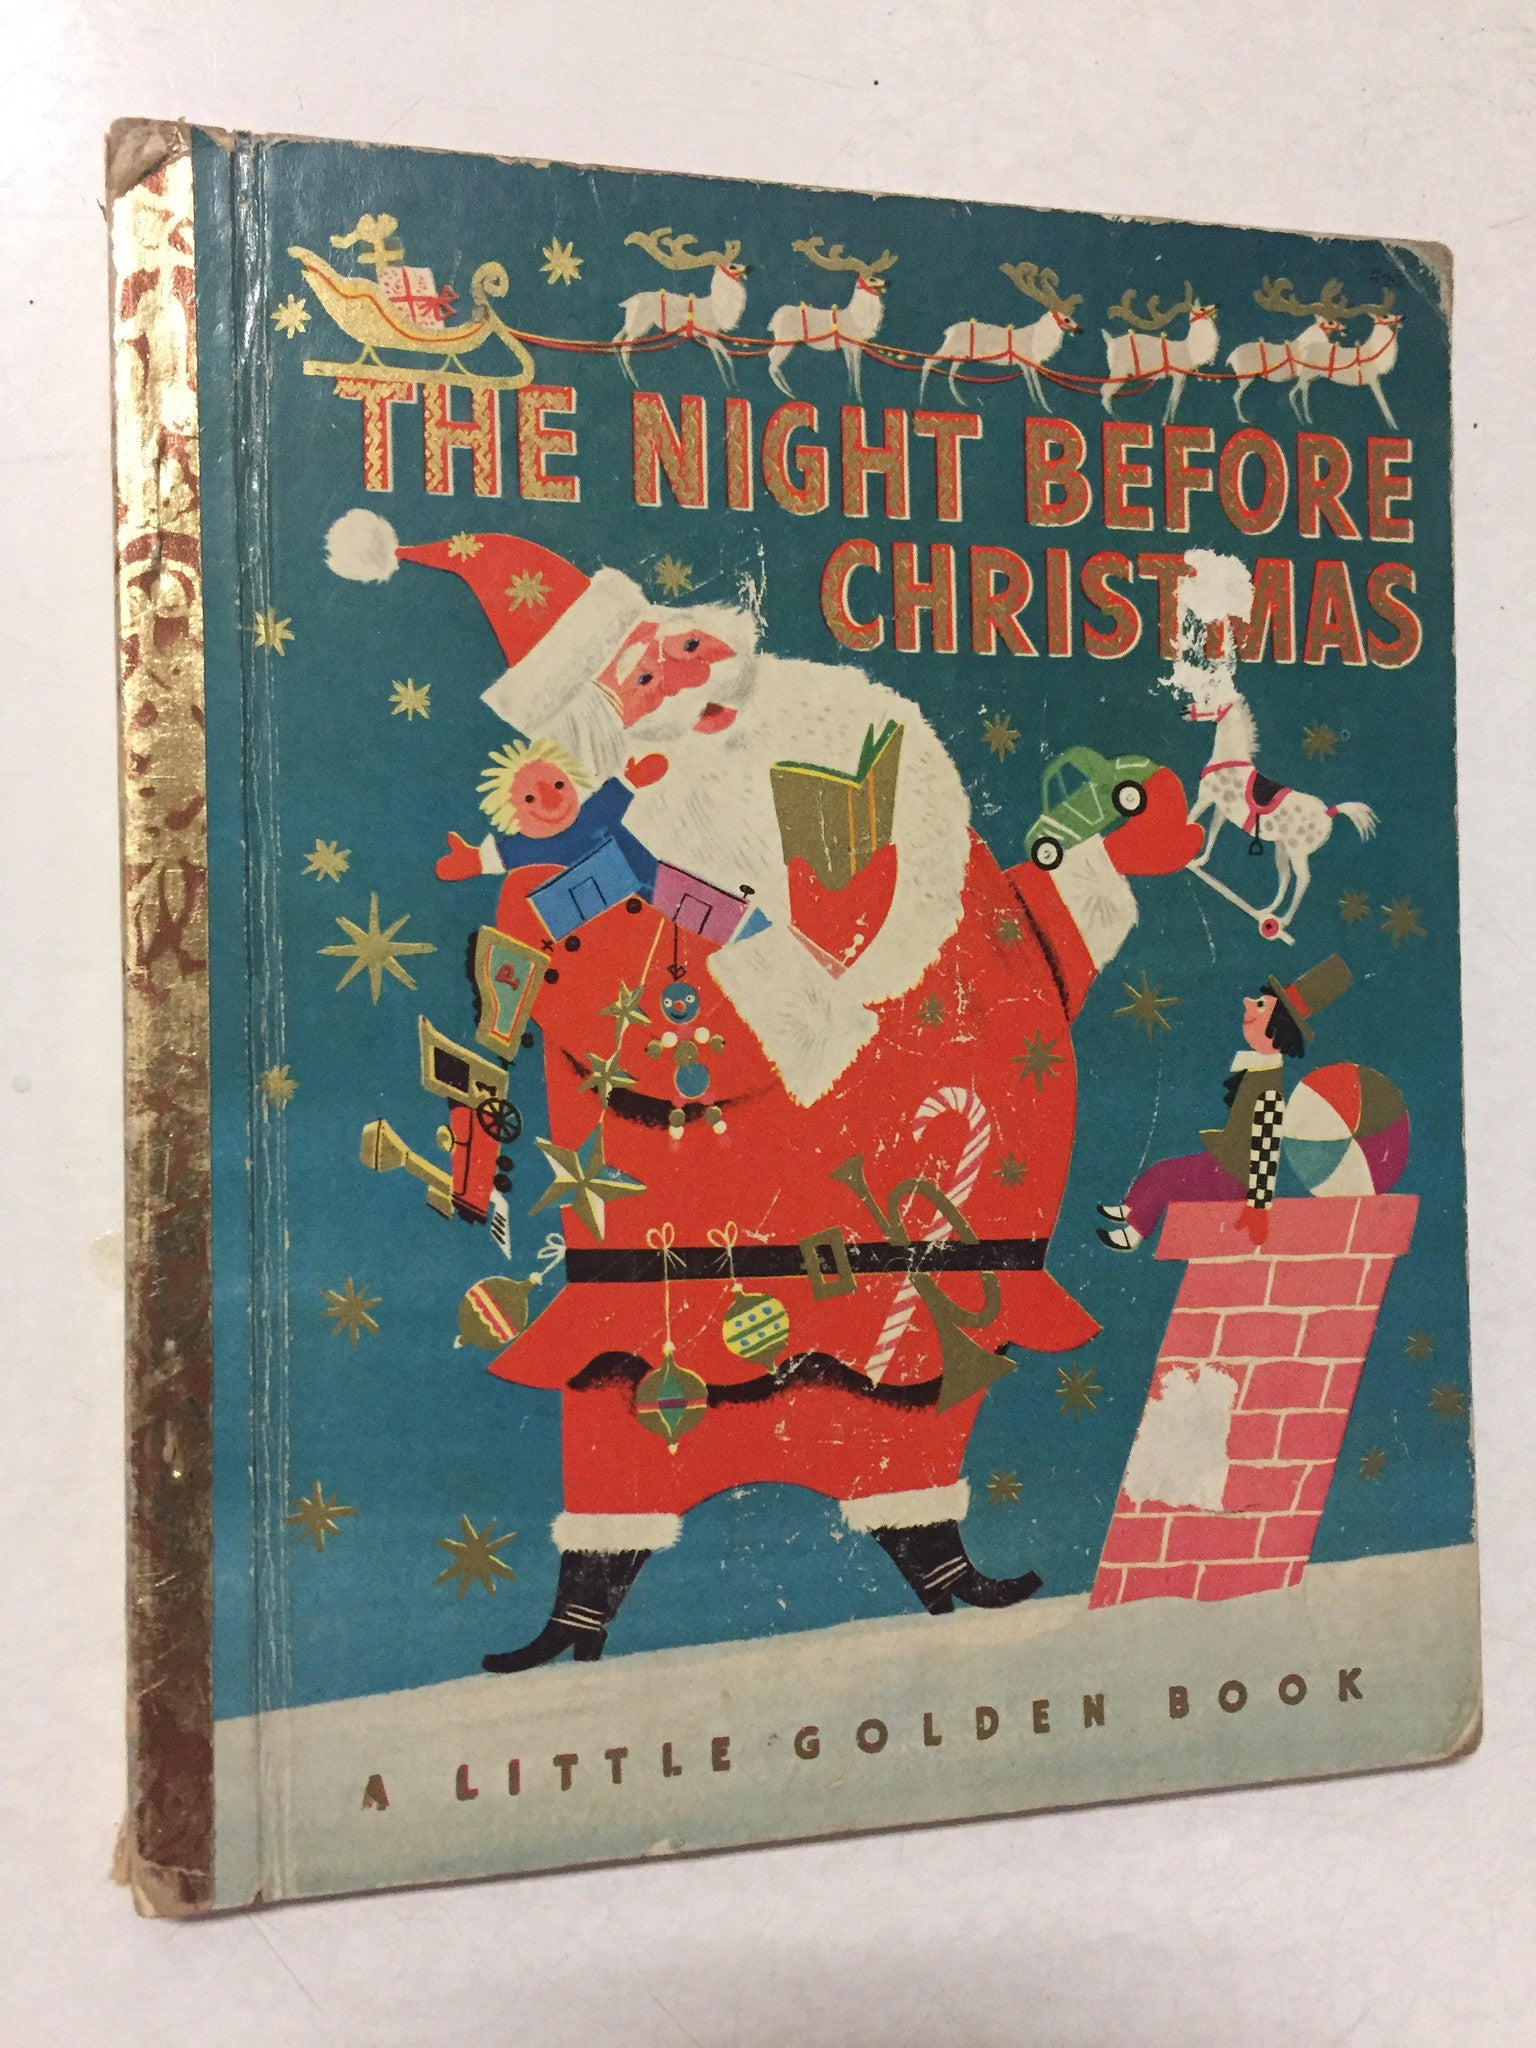 The Night Before Christmas - Slickcatbooks